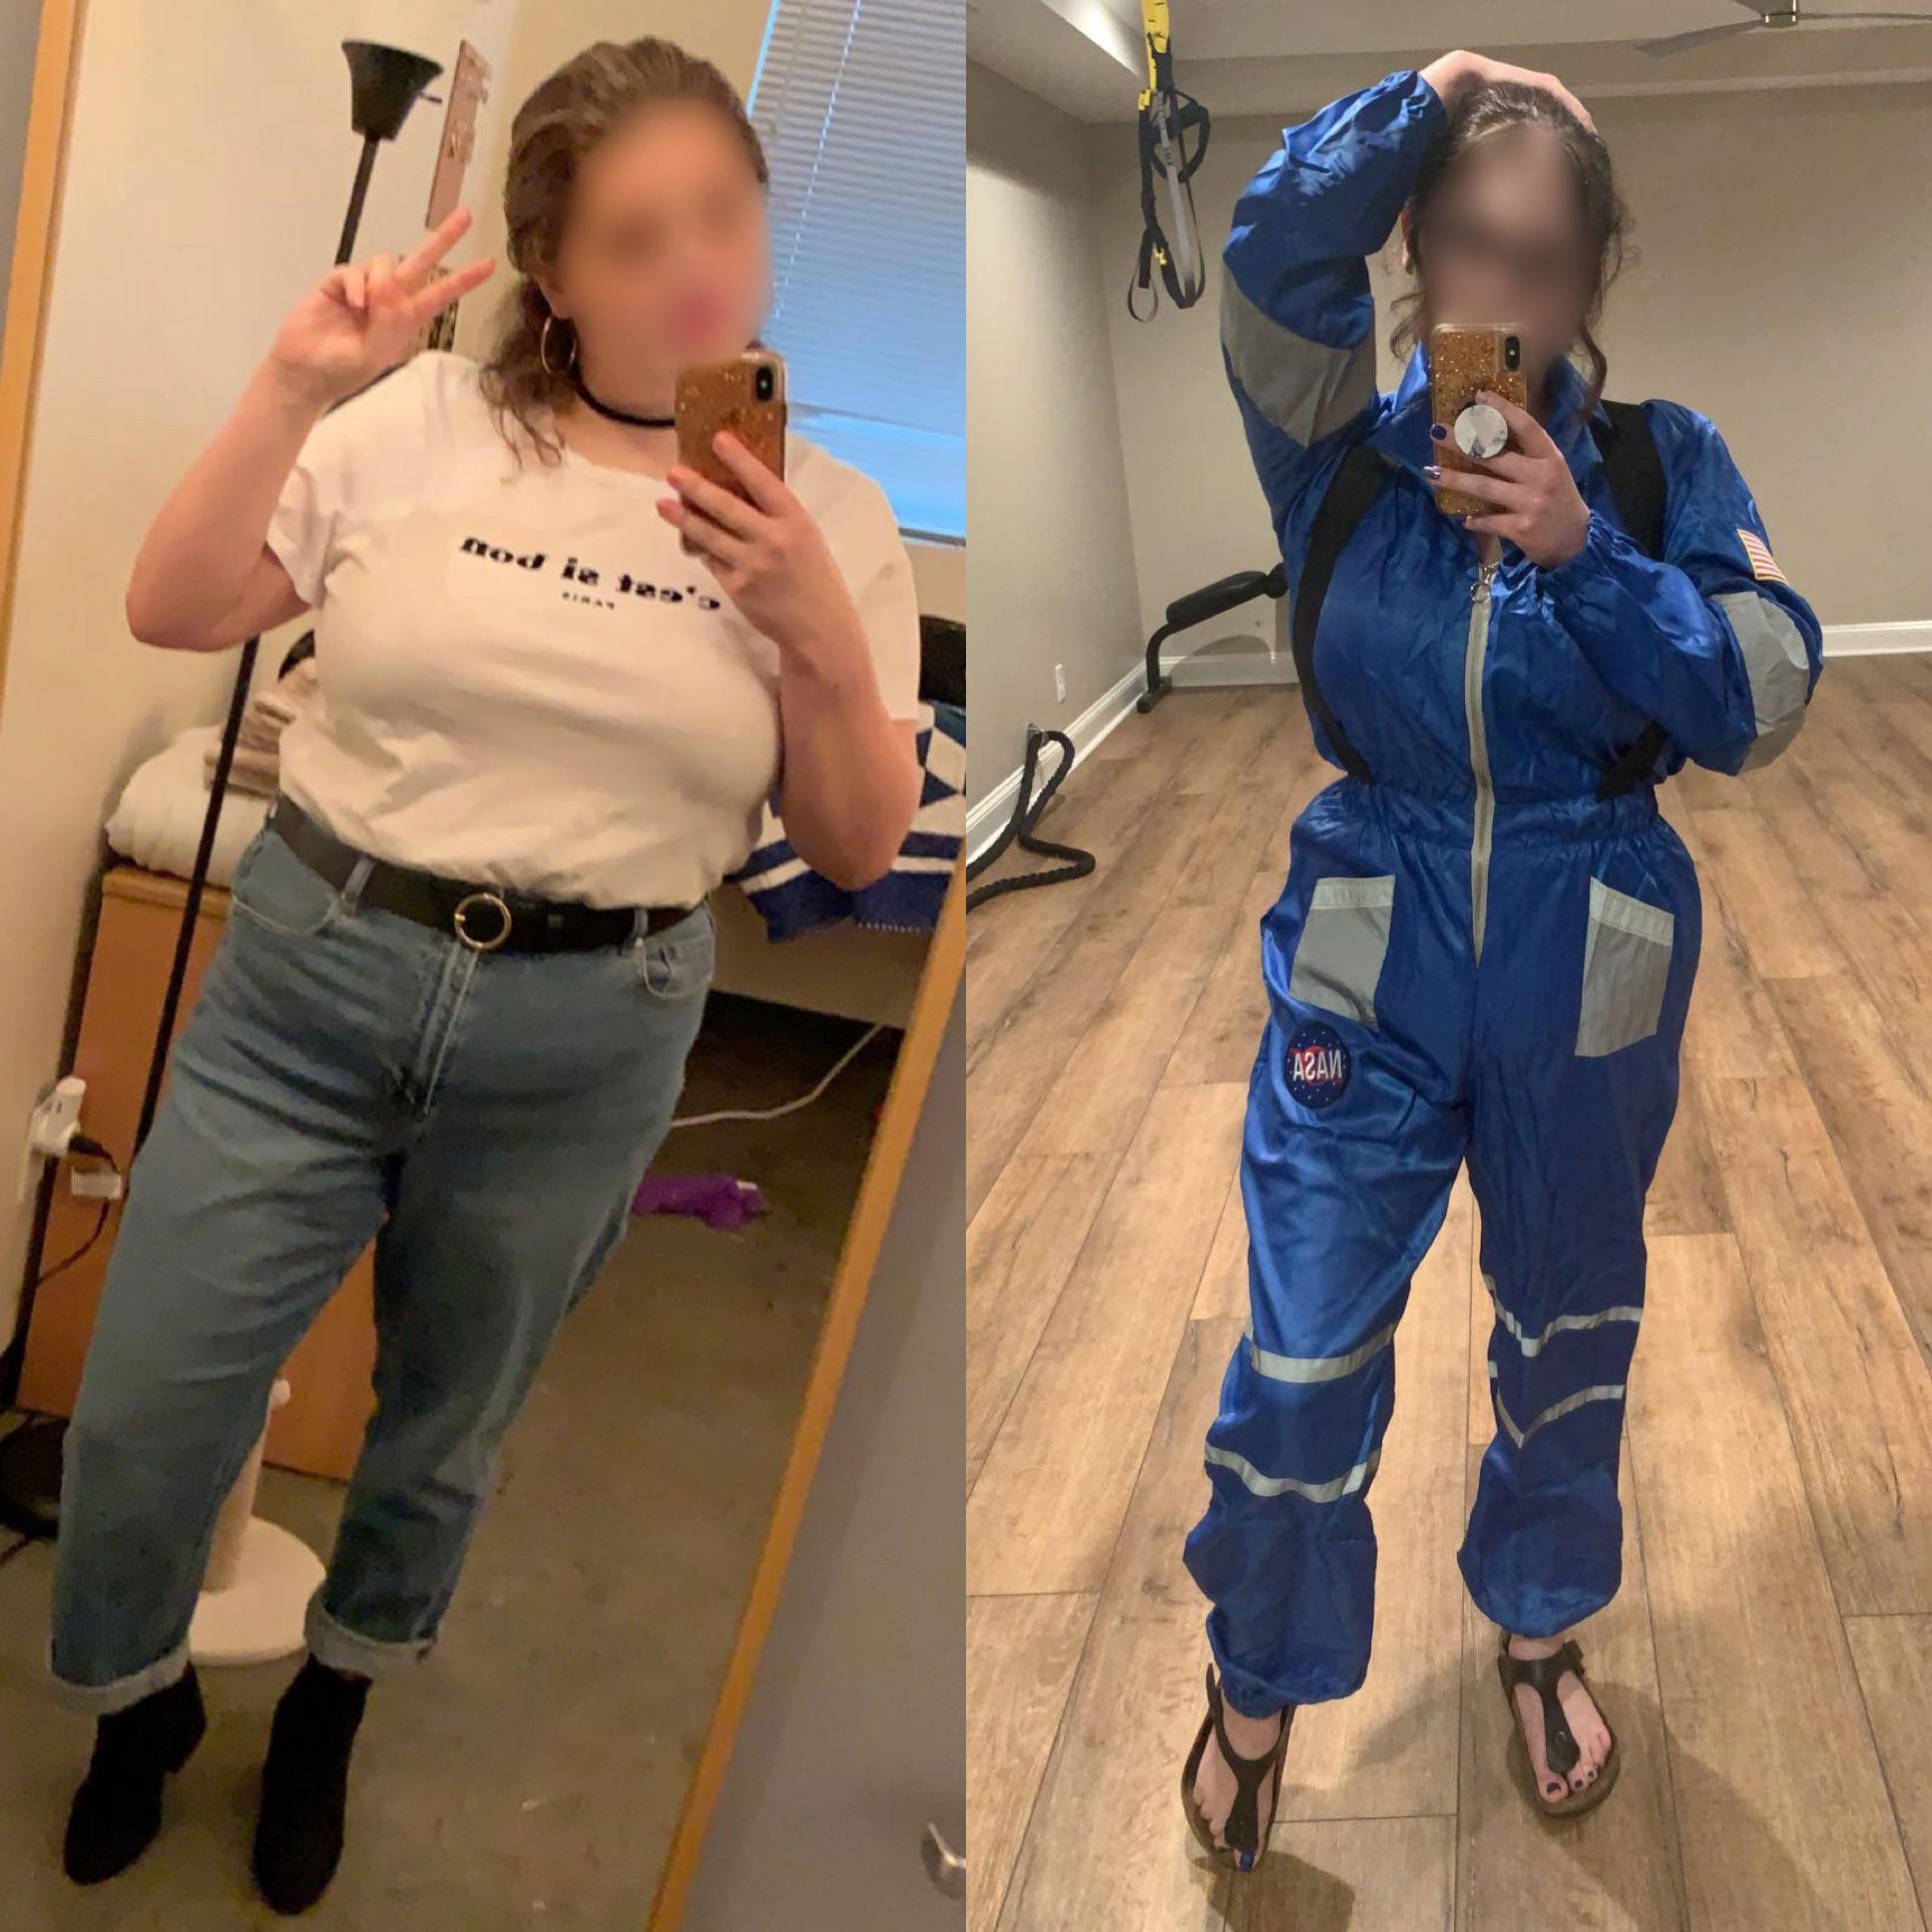 Before and After 52 lbs Fat Loss 5 foot 5 Female 208 lbs to 156 lbs